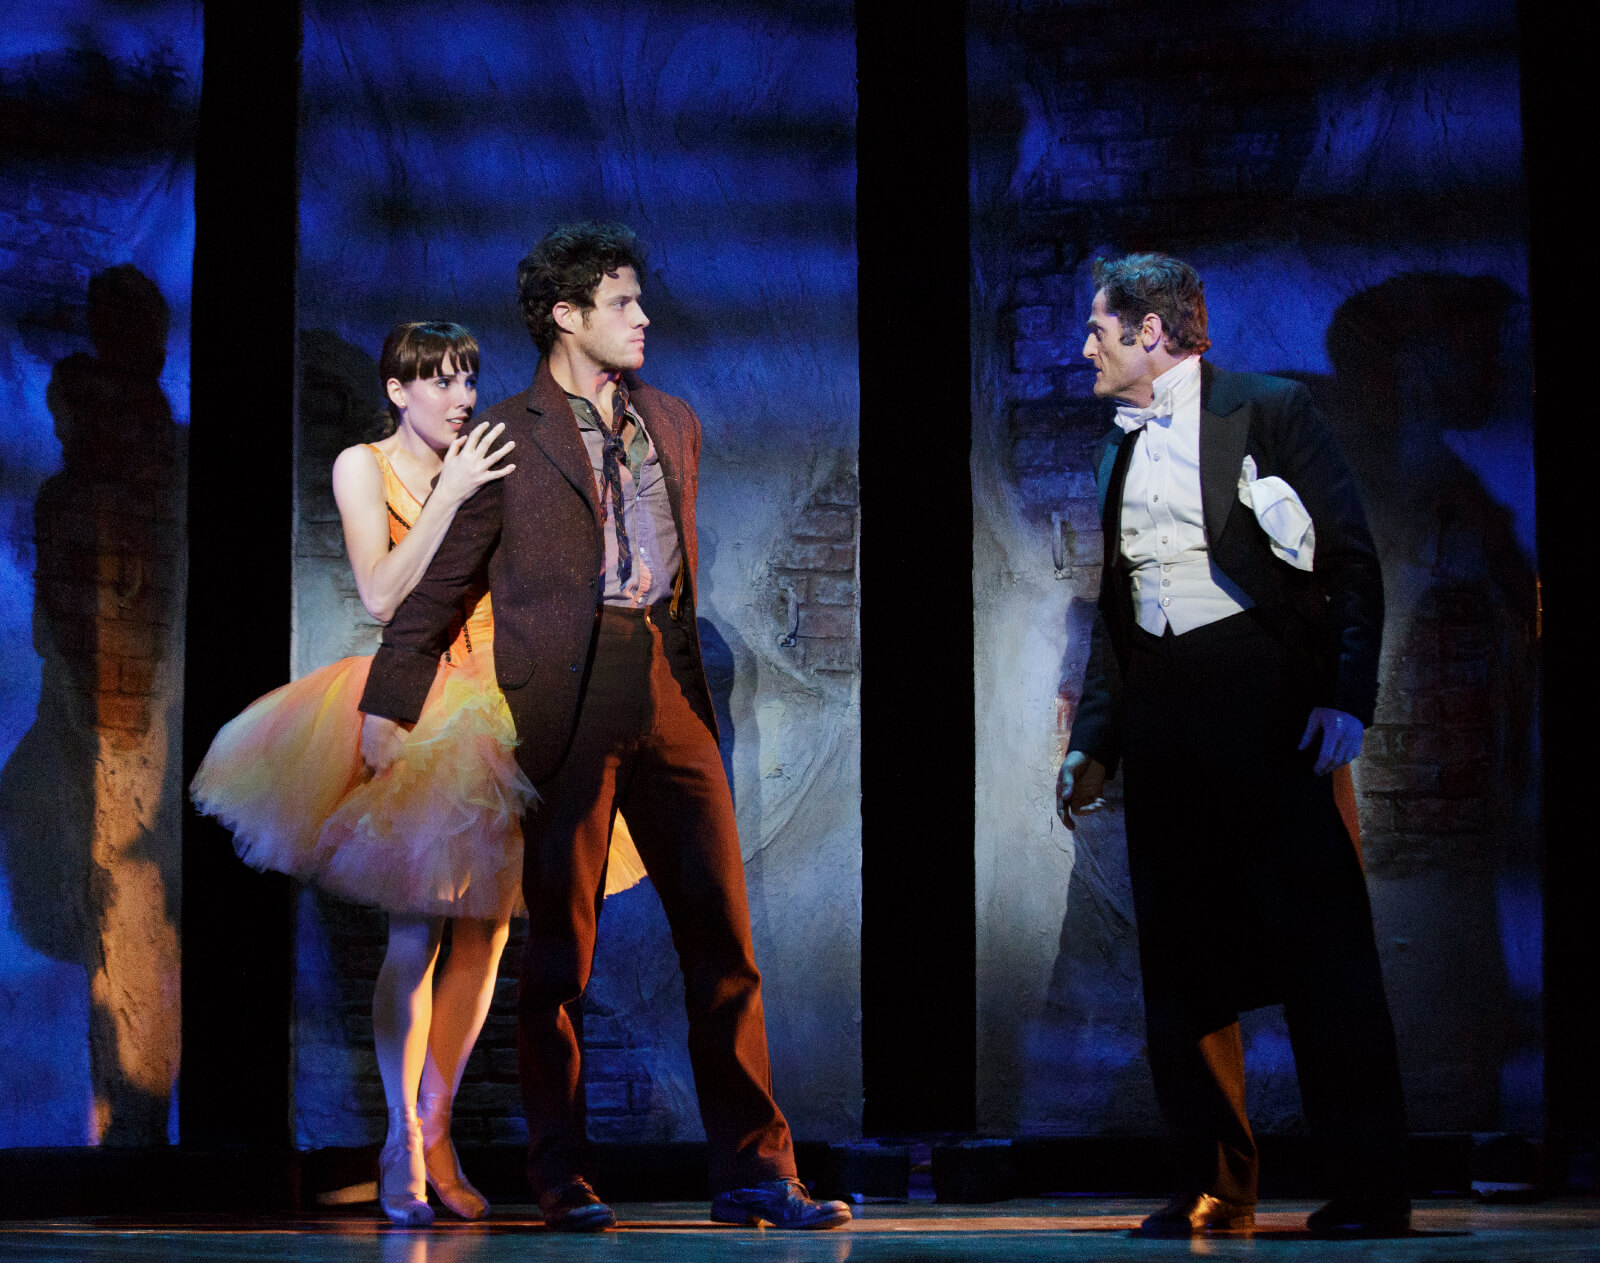 Marie (Tiler Peck) being protected by Christian (Kyle Harris) as Philippe (Seán Martin Hingston) threatens them in the musical Little Dancer.